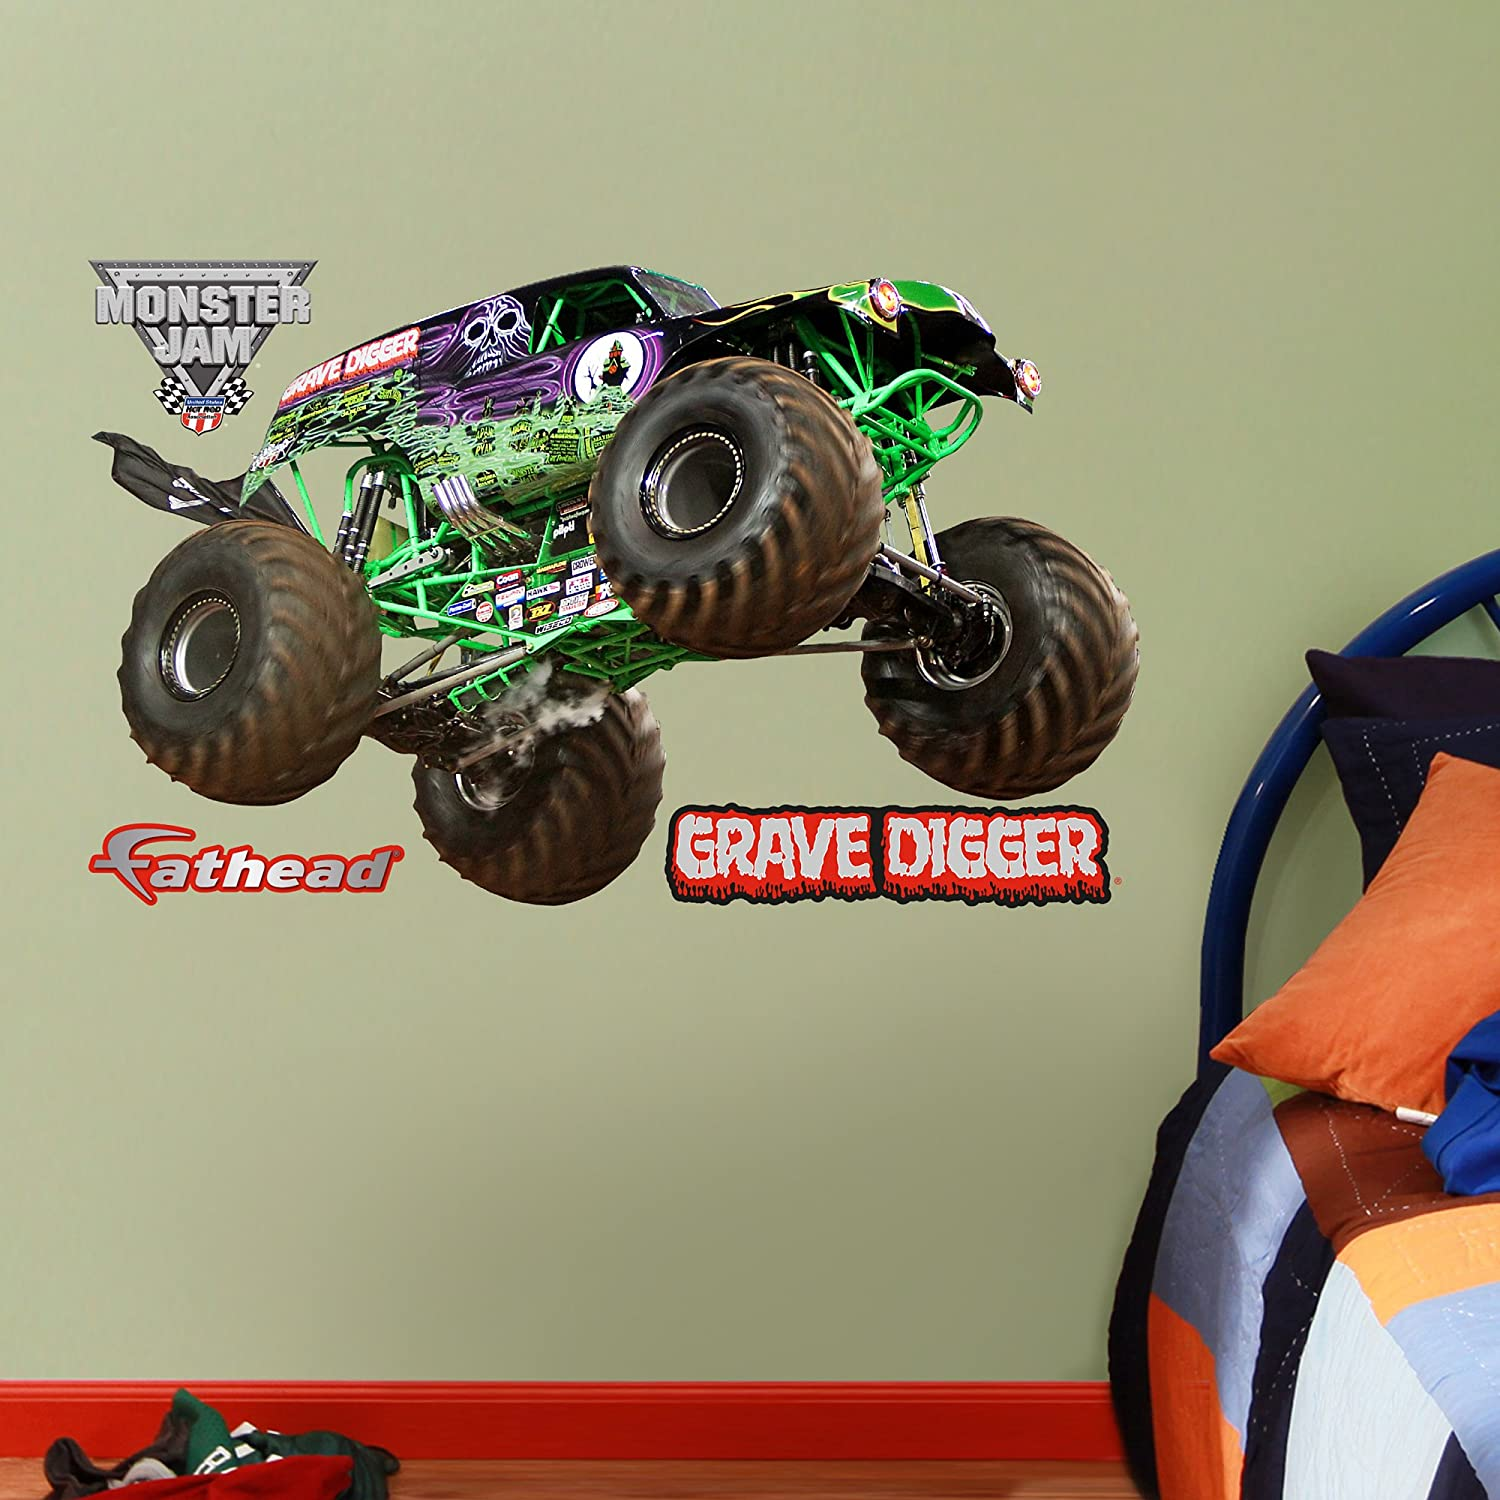 Amazon.com: FATHEAD Grave Digger Fathead Jr. Graphic Wall Décor: Home U0026  Kitchen